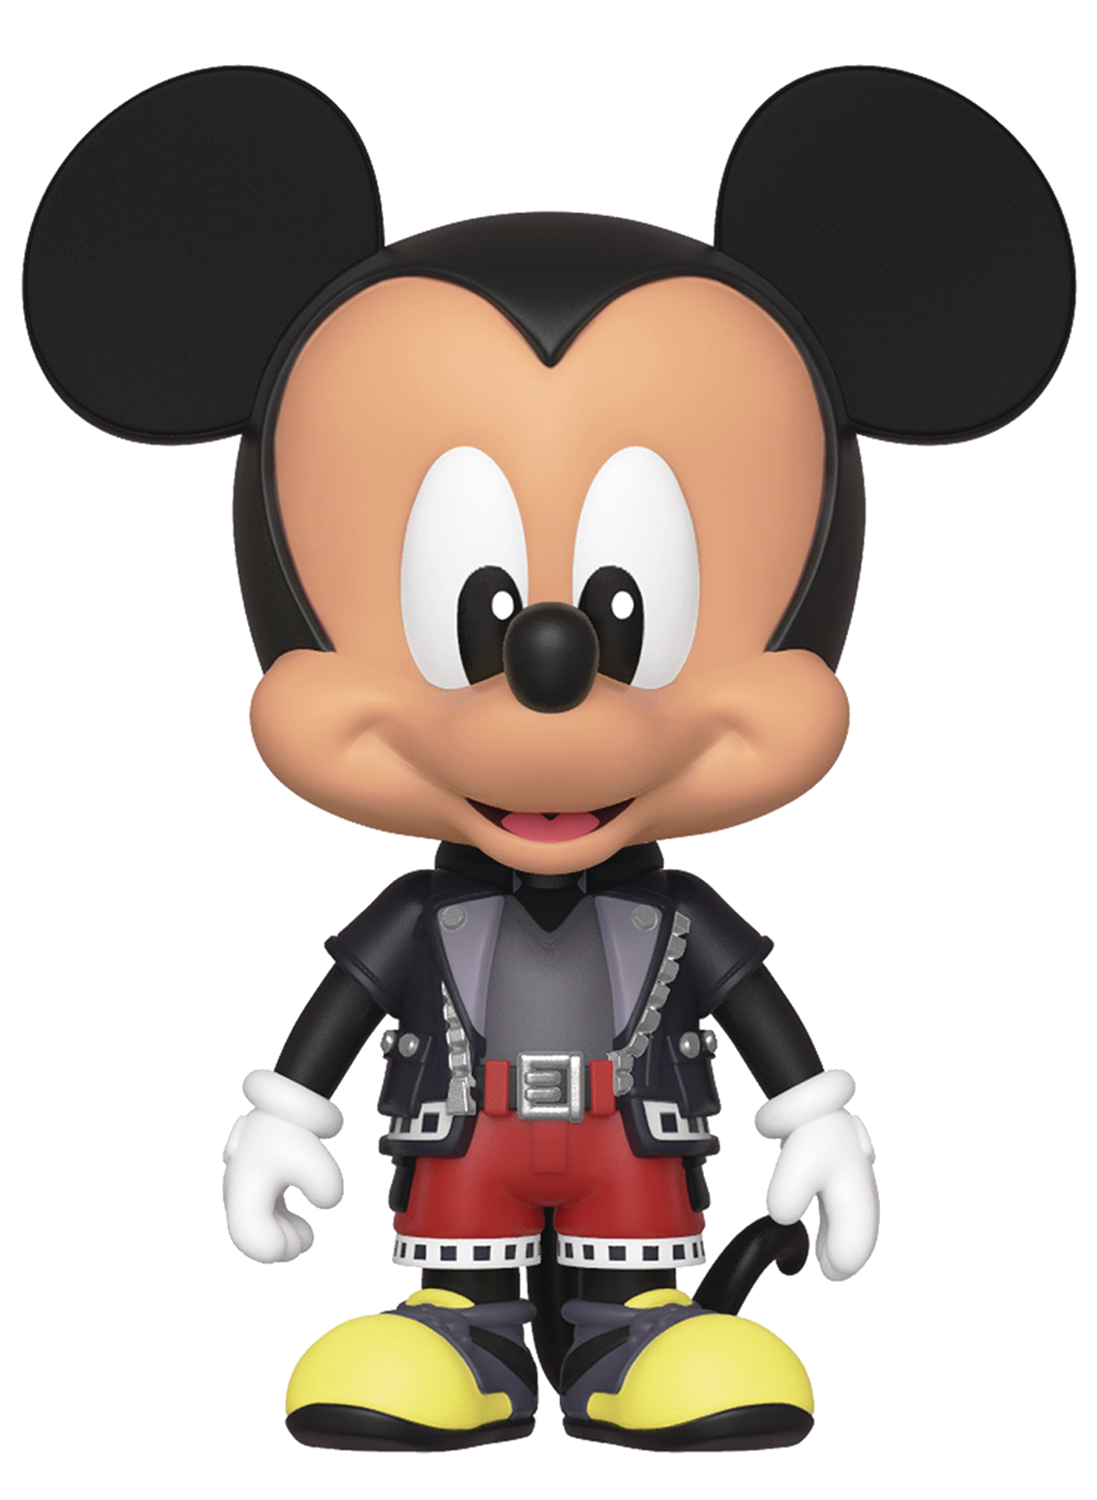 KINGDOM HEARTS 3 5 STAR MICKEY VINYL FIG